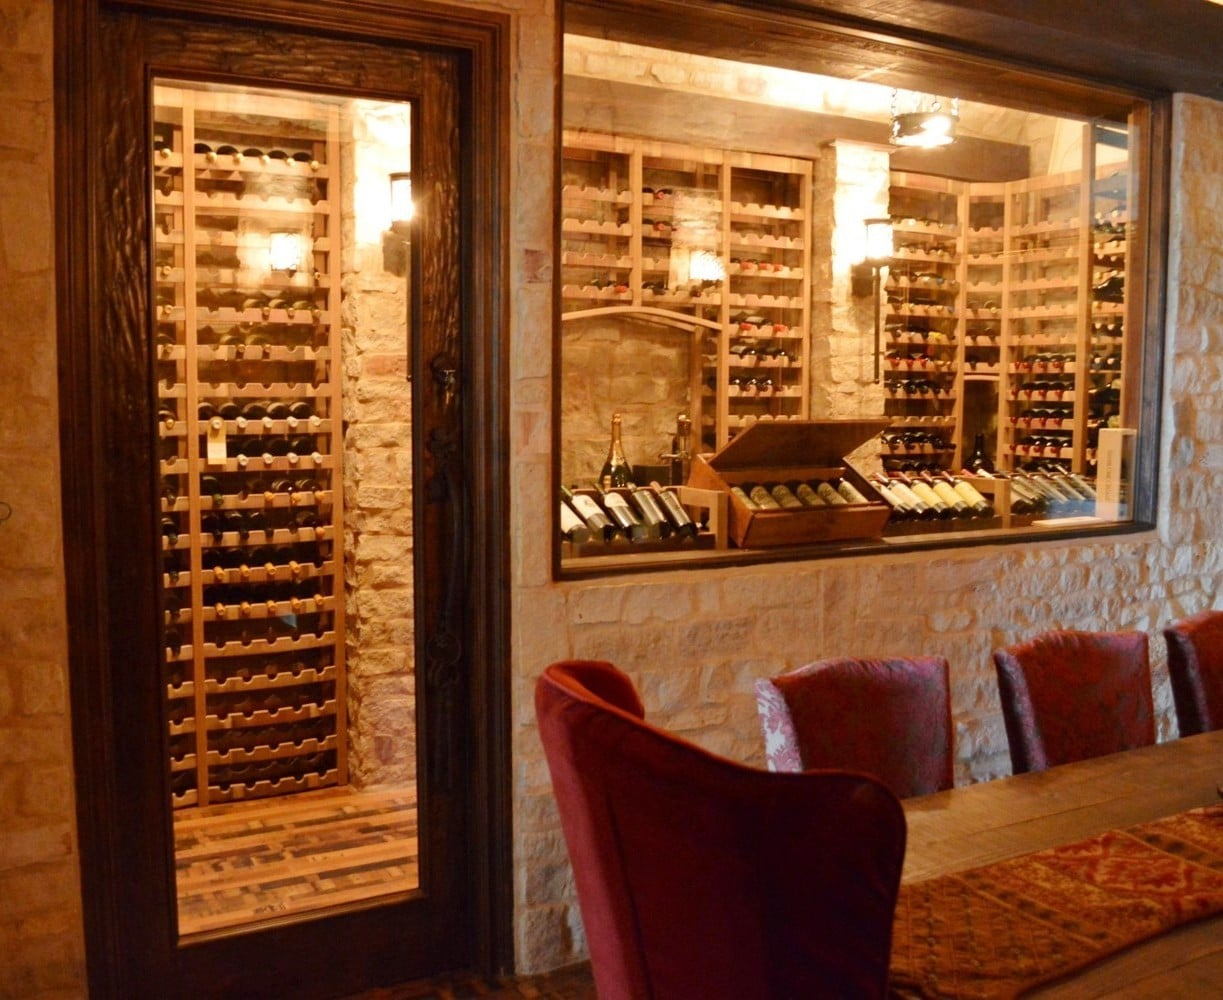 Wine Cellar Lighting Miami Builders : wine cellar miami  - Aeropaca.Org